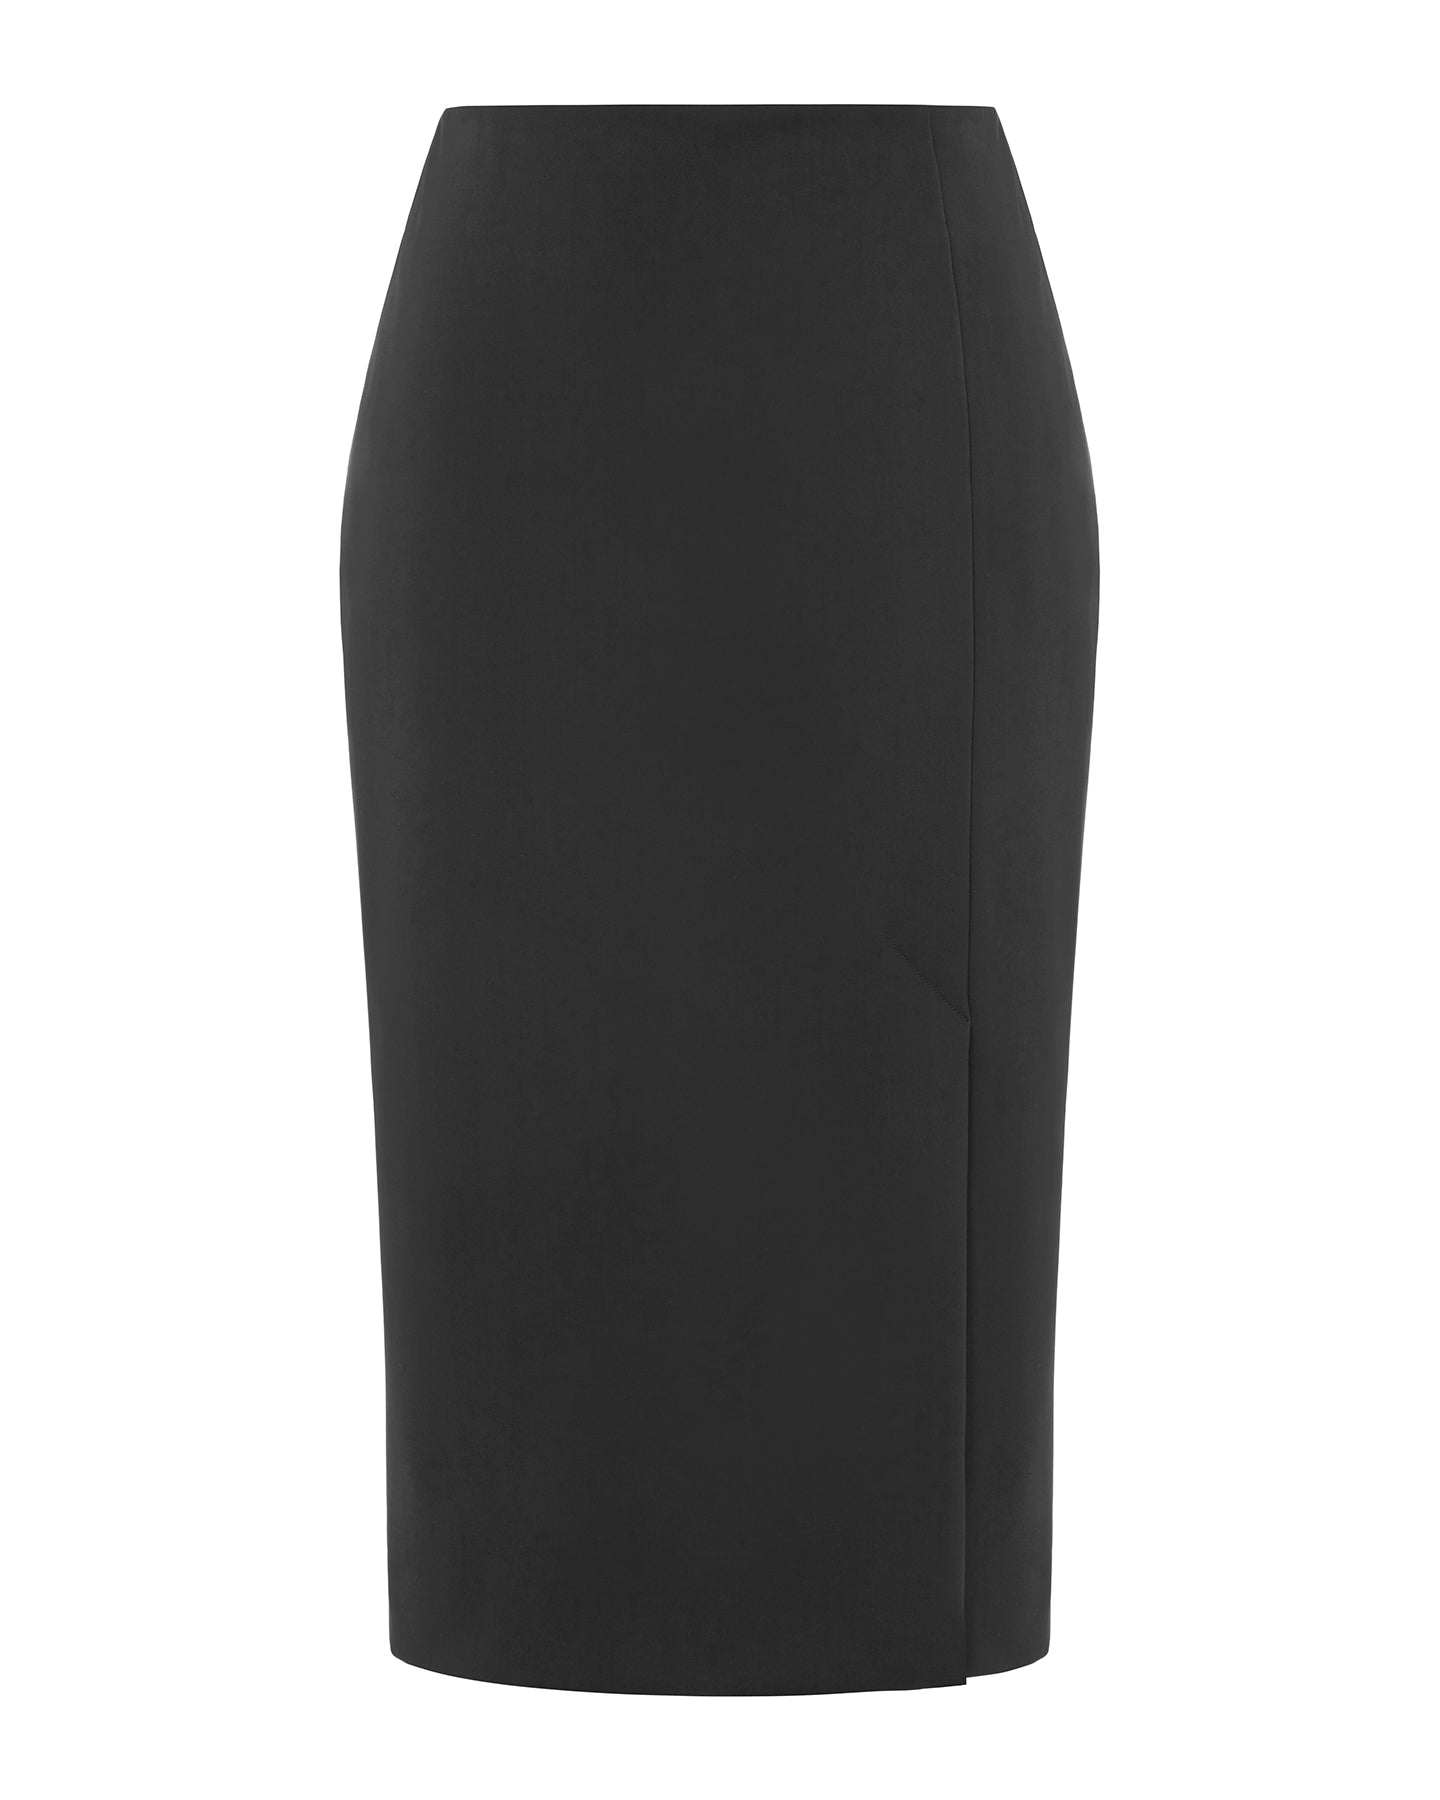 Power Line Skirt Black 2.0